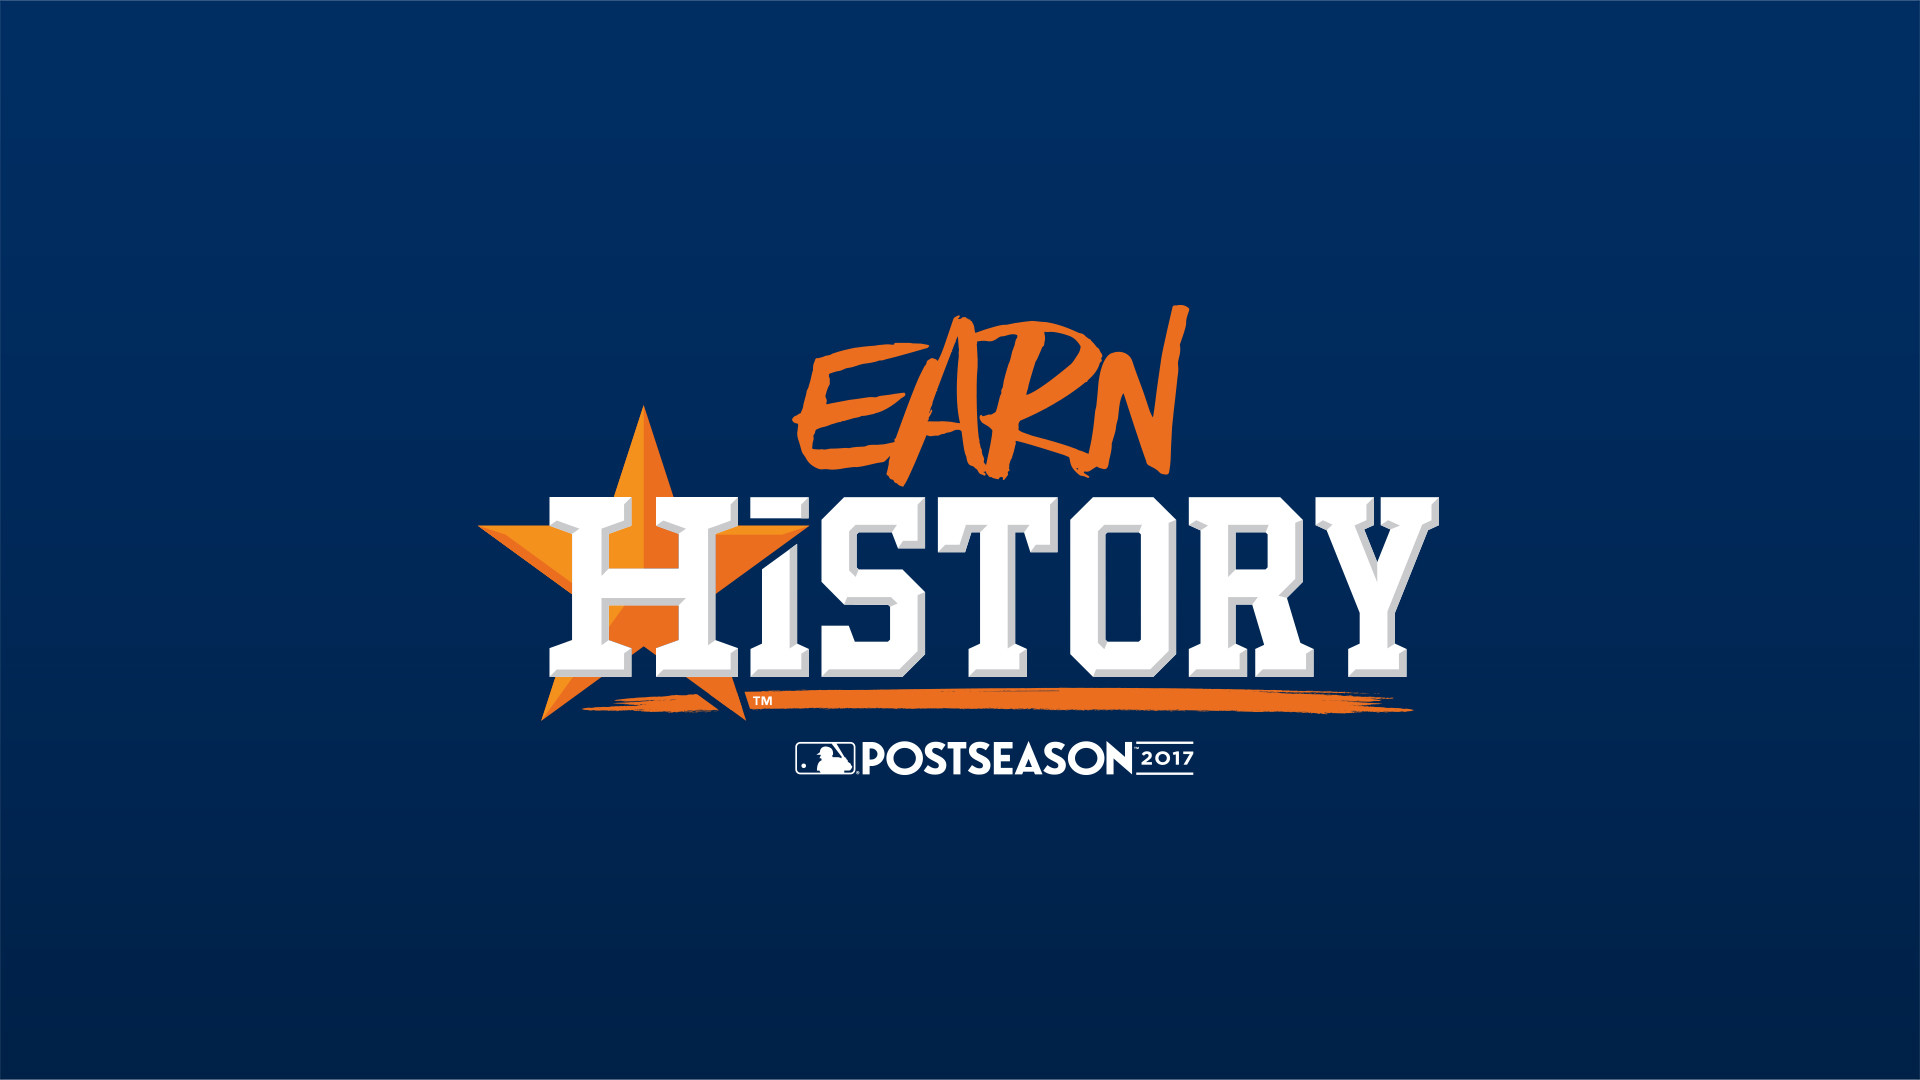 houston astros wallpapers ·①